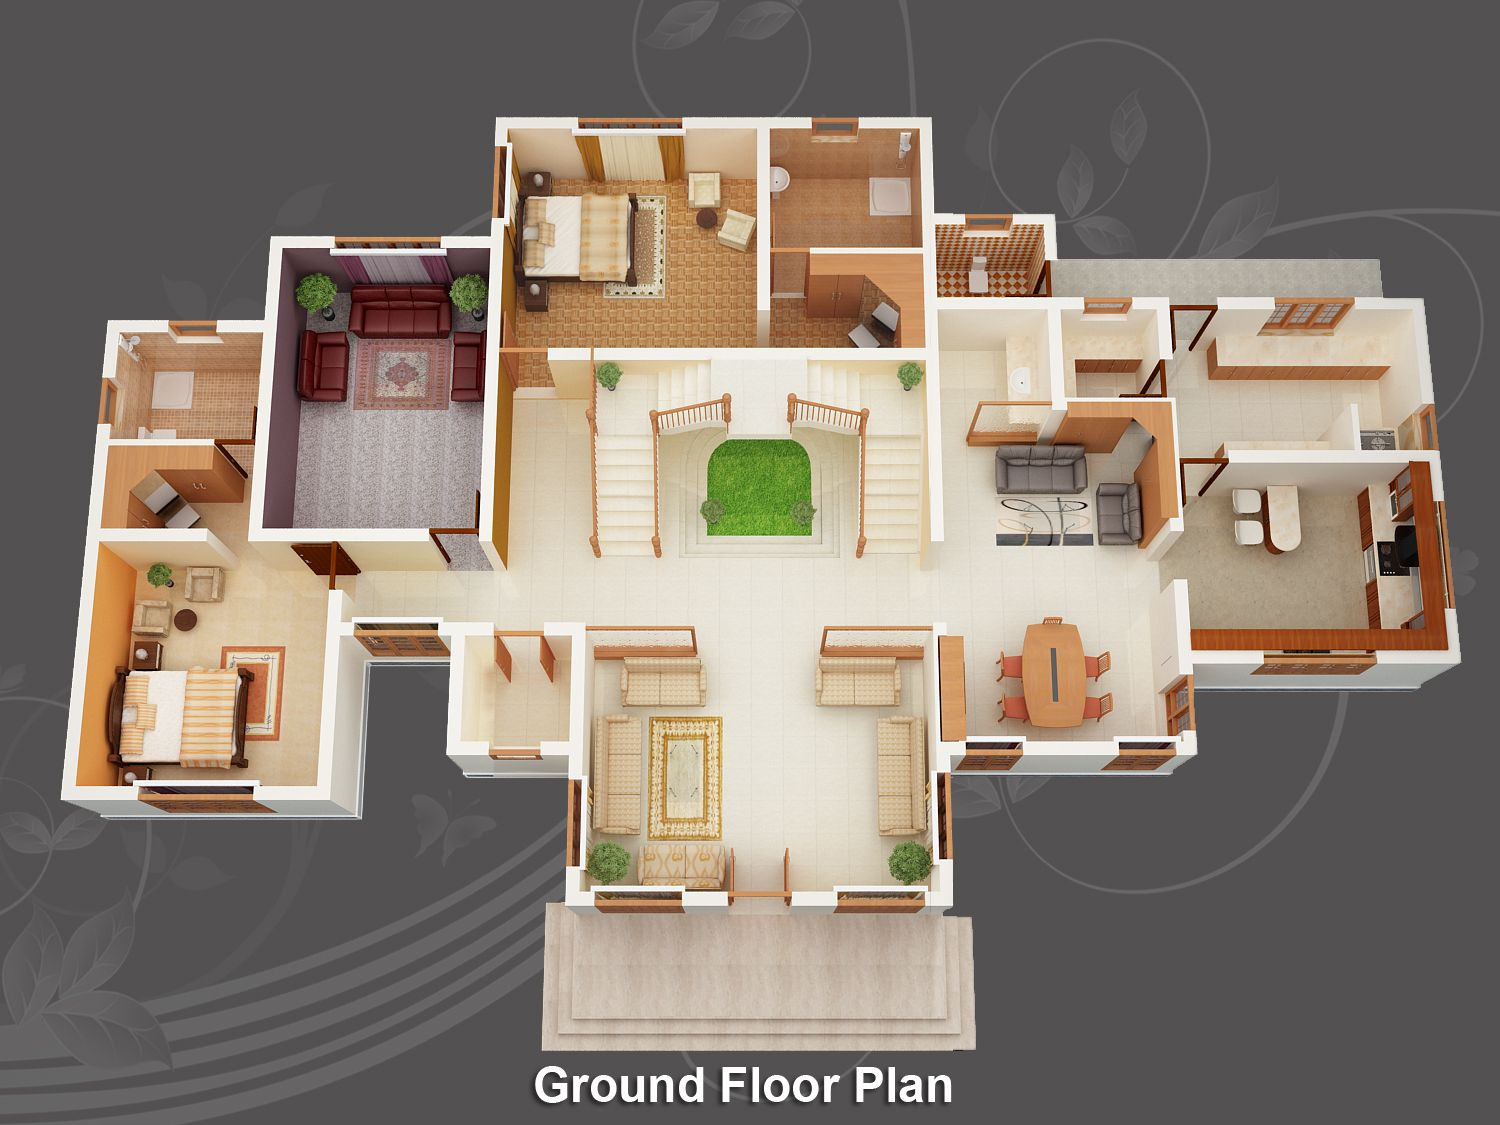 Image For Free Home Design Plans D Wallpaper Desktop Ide Buat 4 Bedroom House Plan